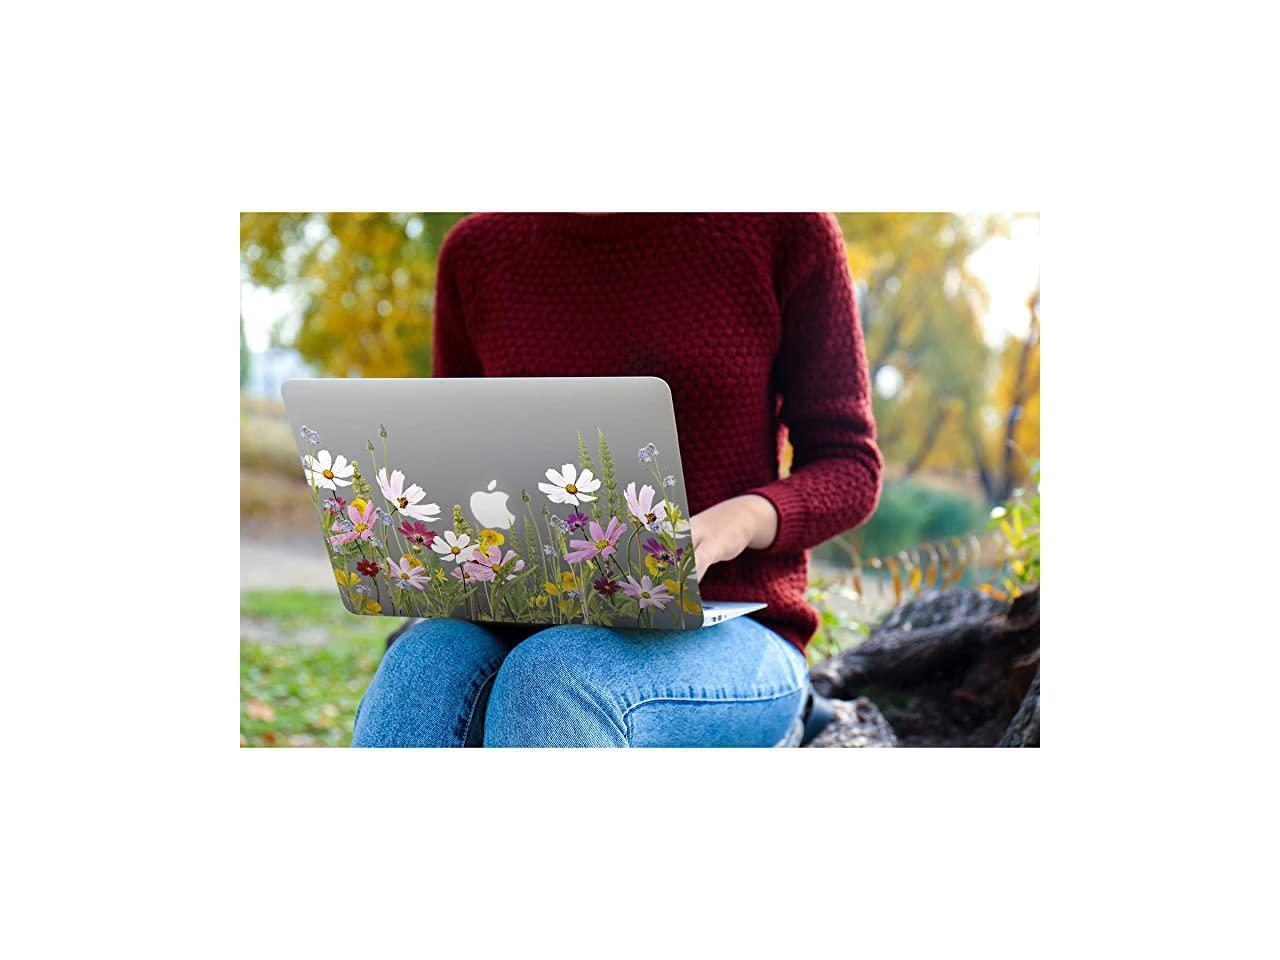 Engree MacBook Pro 15 Case 2019 2018 2017 2016 Release A1990//A1707 Dragonfly and Lotus Flower Pattern Hard Case Shell Cover for Apple MacBook Pro 15 with Touch Bar and Touch ID